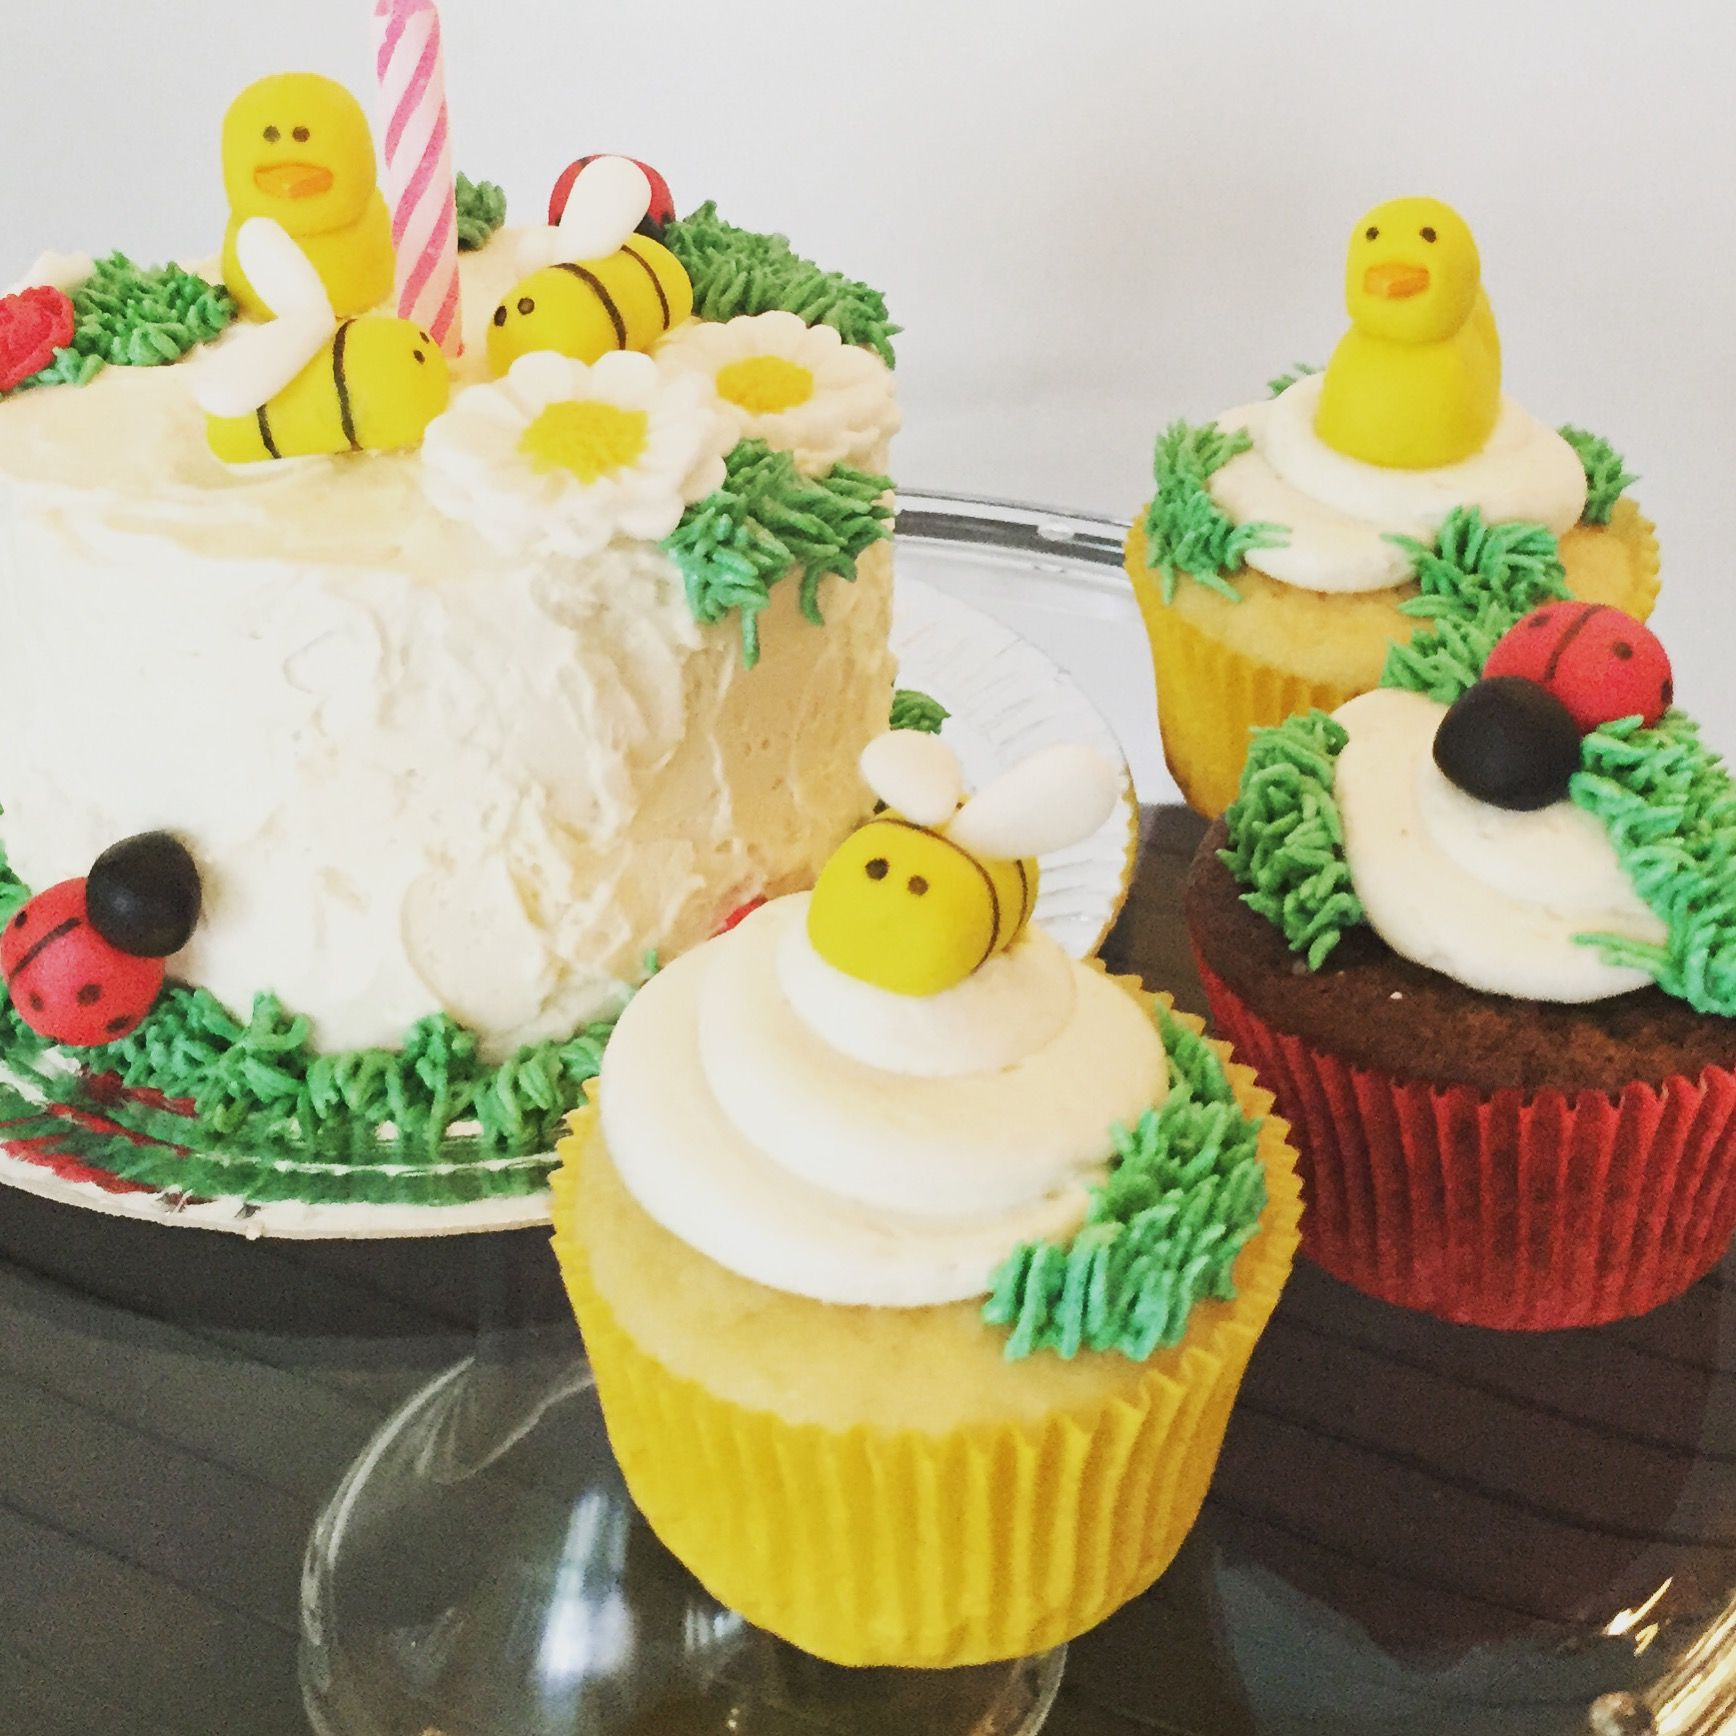 mini bugs duck cupcakes and mini cake ladybug bees and